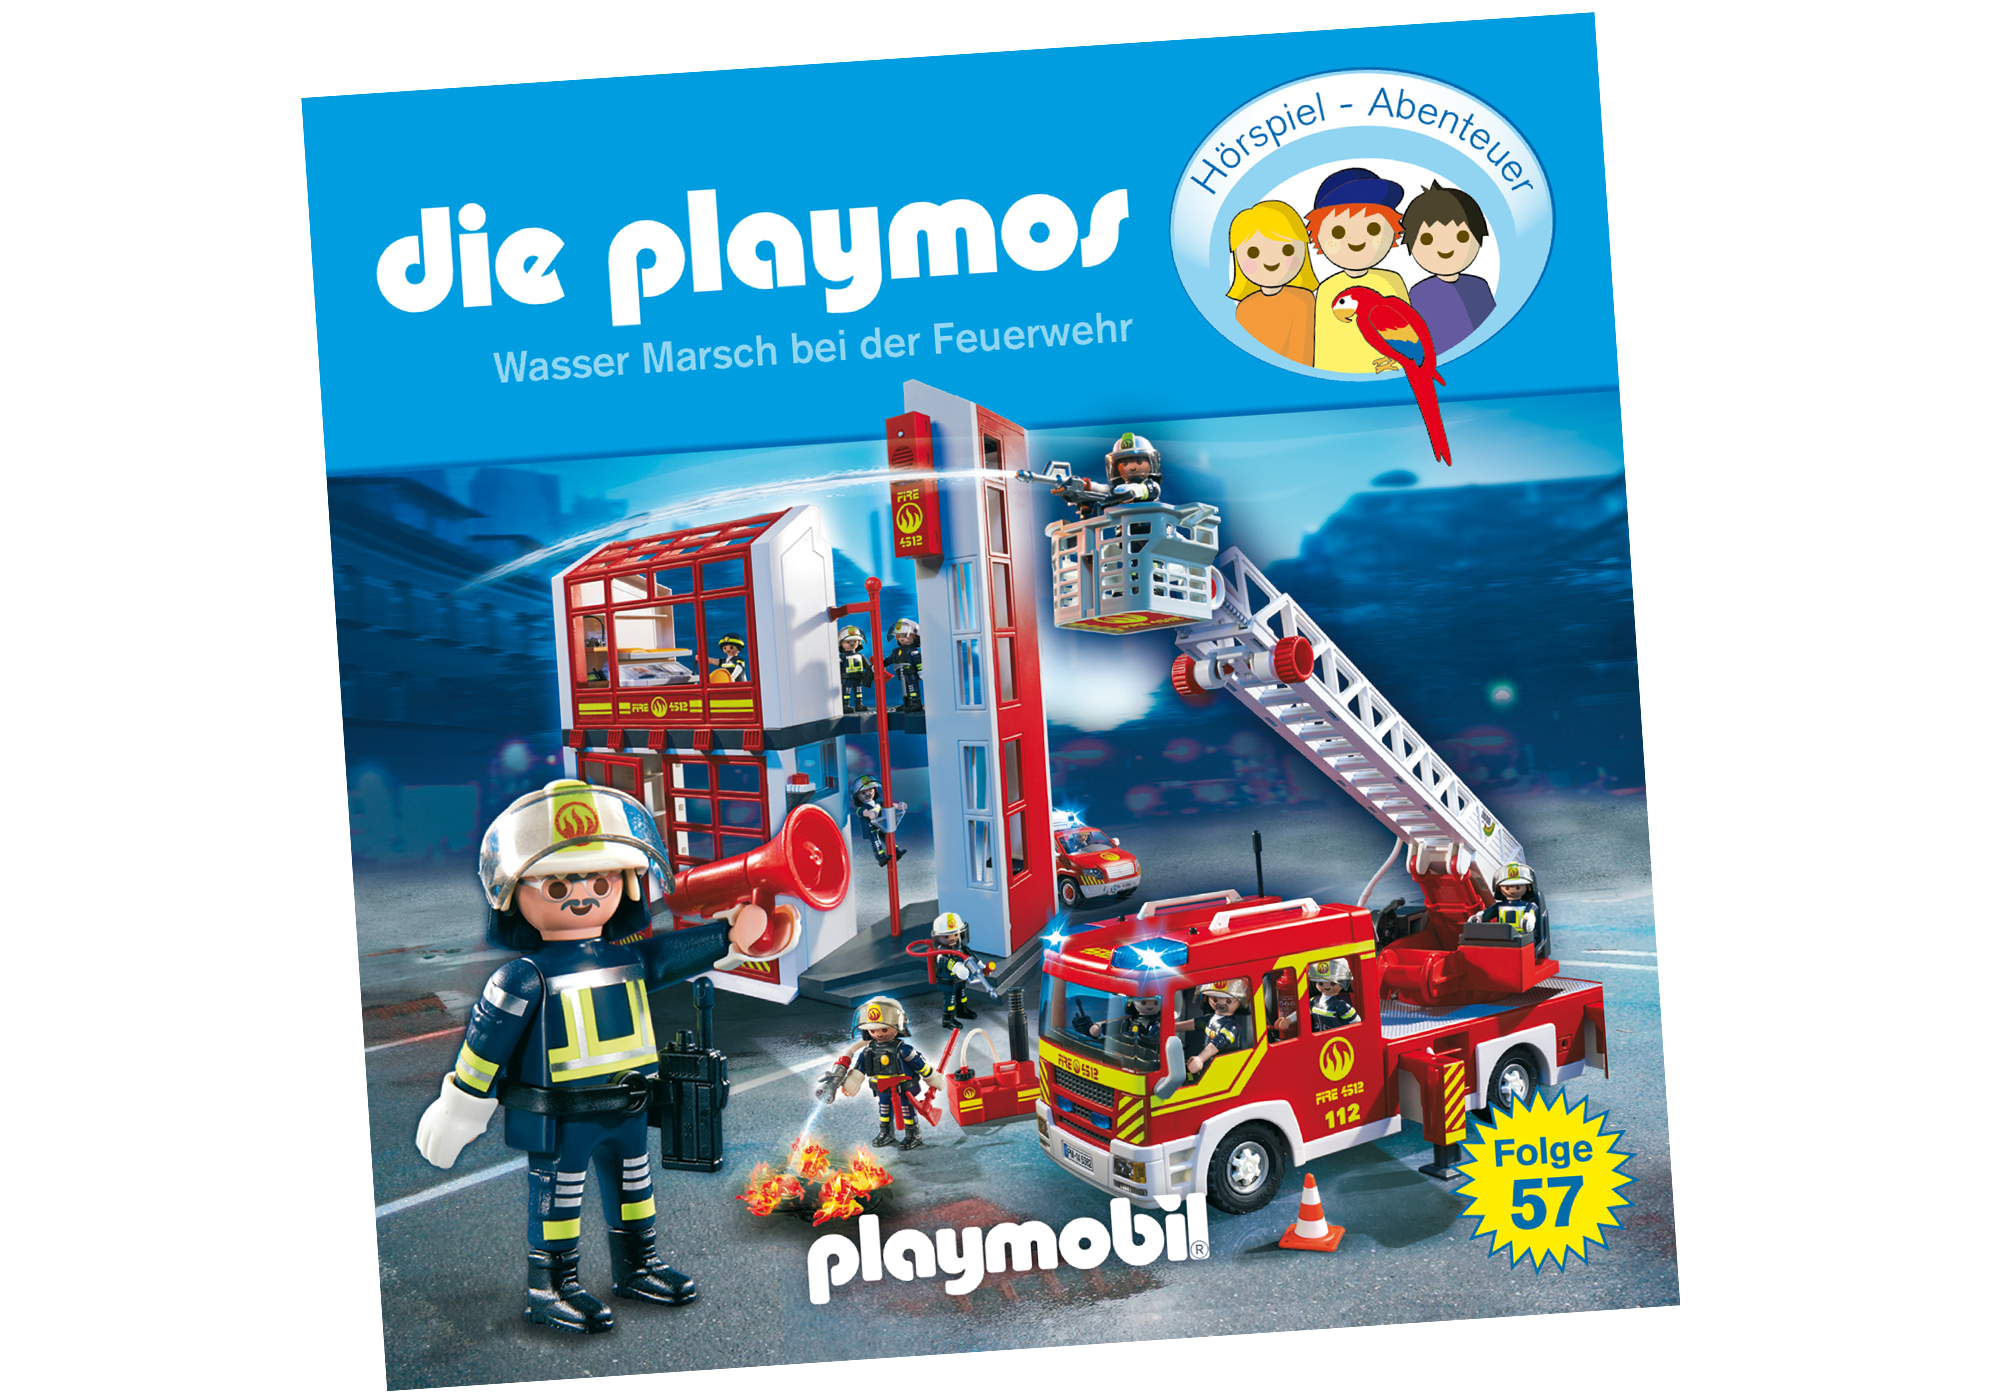 http://media.playmobil.com/i/playmobil/80009_product_detail